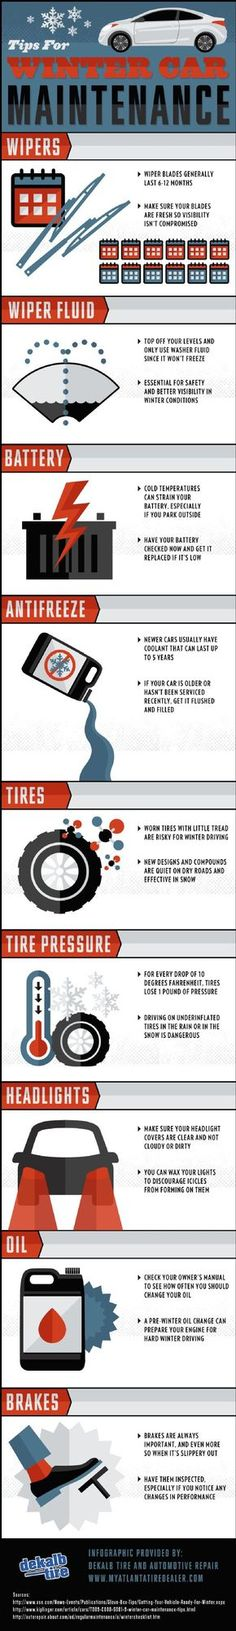 Cold temperatures can strain your car battery, especially if you park outside! Take a look at this infographic from a car repair specialist in Atlanta to see how to prepare your battery and the rest of your car for the winter season.